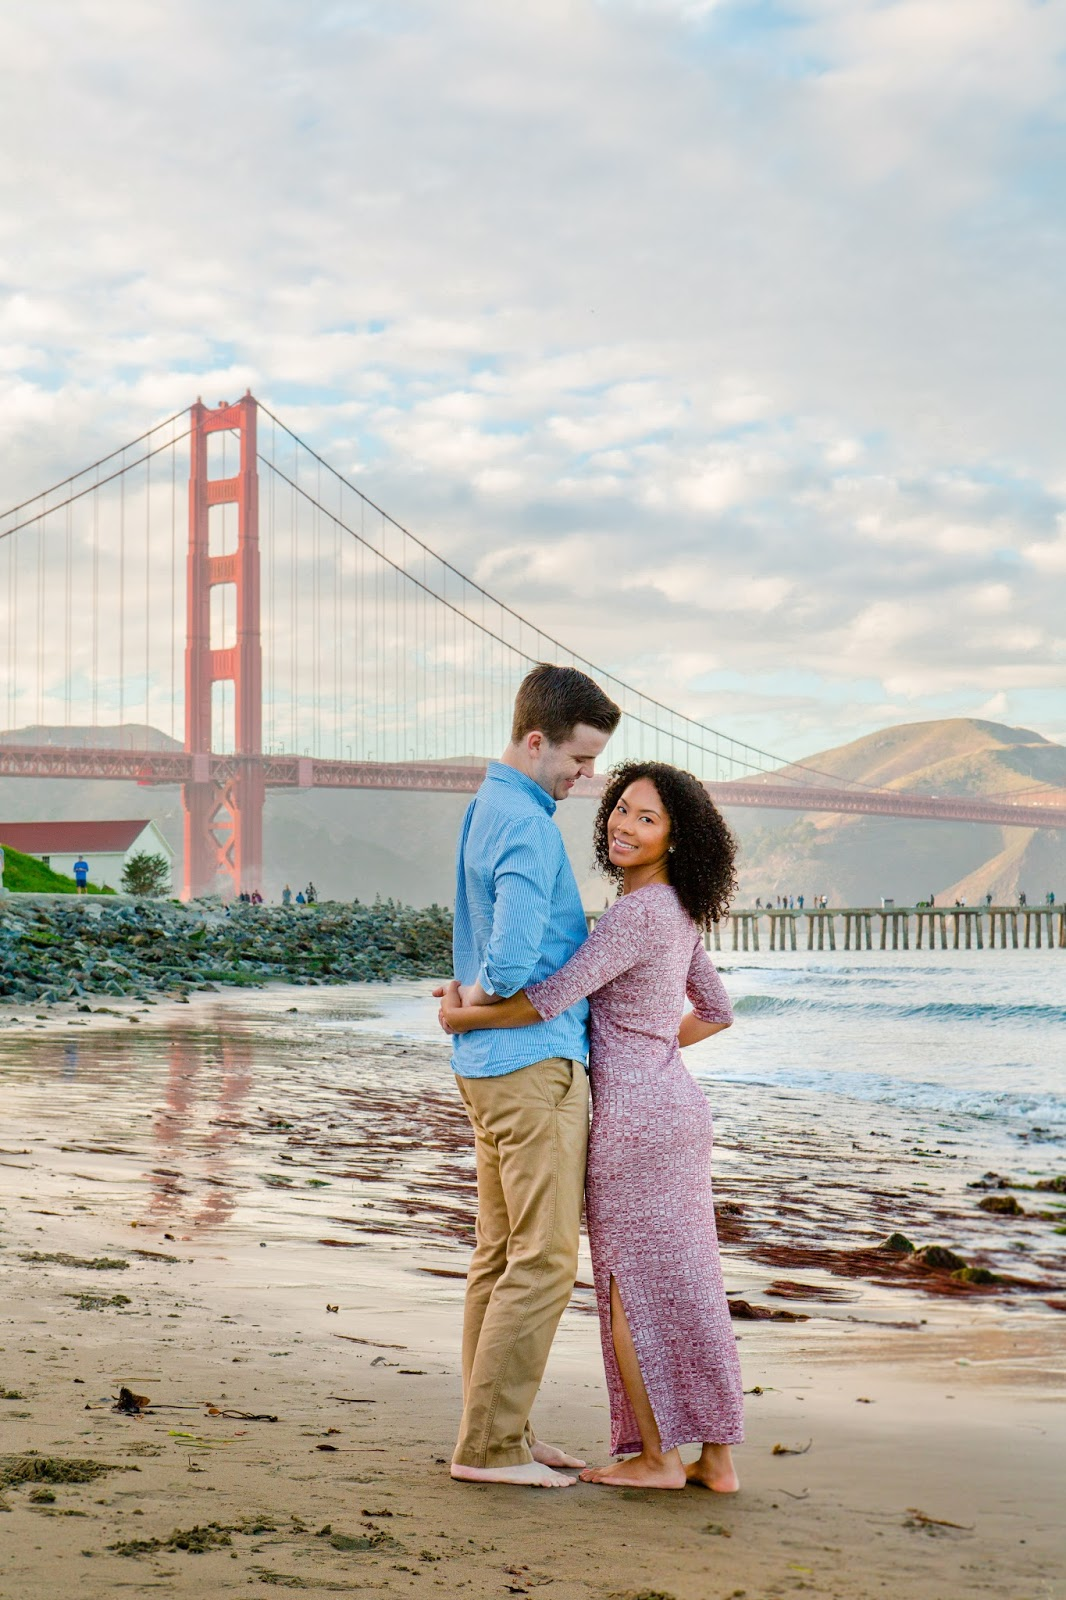 mountain view portrait photographers, san fransisco engagement photography, bay area engagement photography, golden gate bridge, east bay photographers, couples photographers in the bay, engagements, crissy fields, fremont ca photographers, san jose photographers